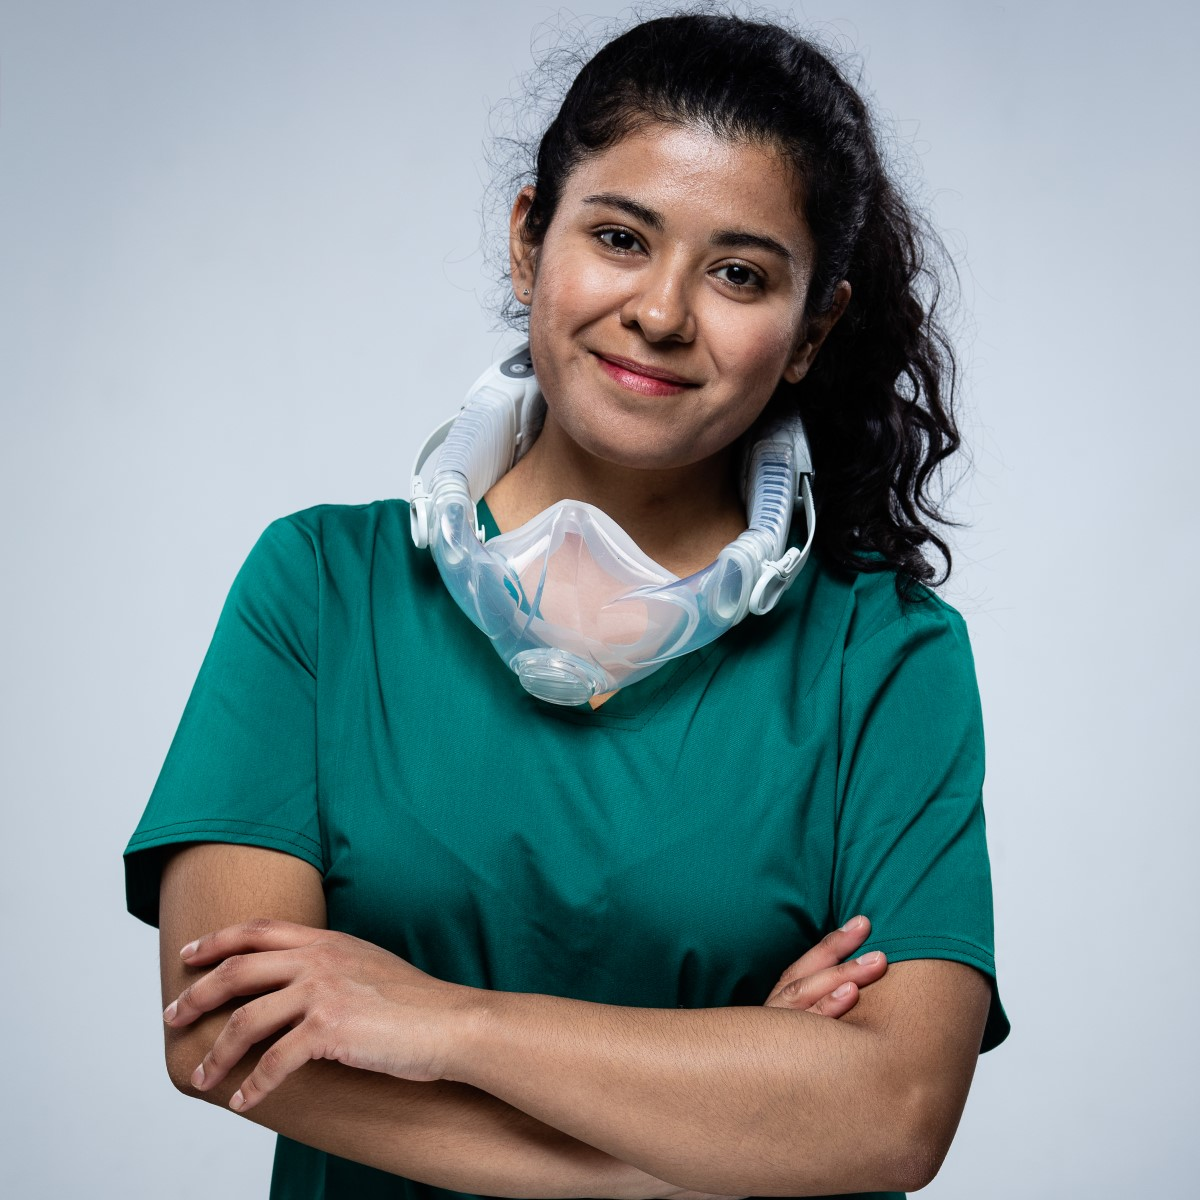 female doctor smiling wearing cleanspace halo around her neck